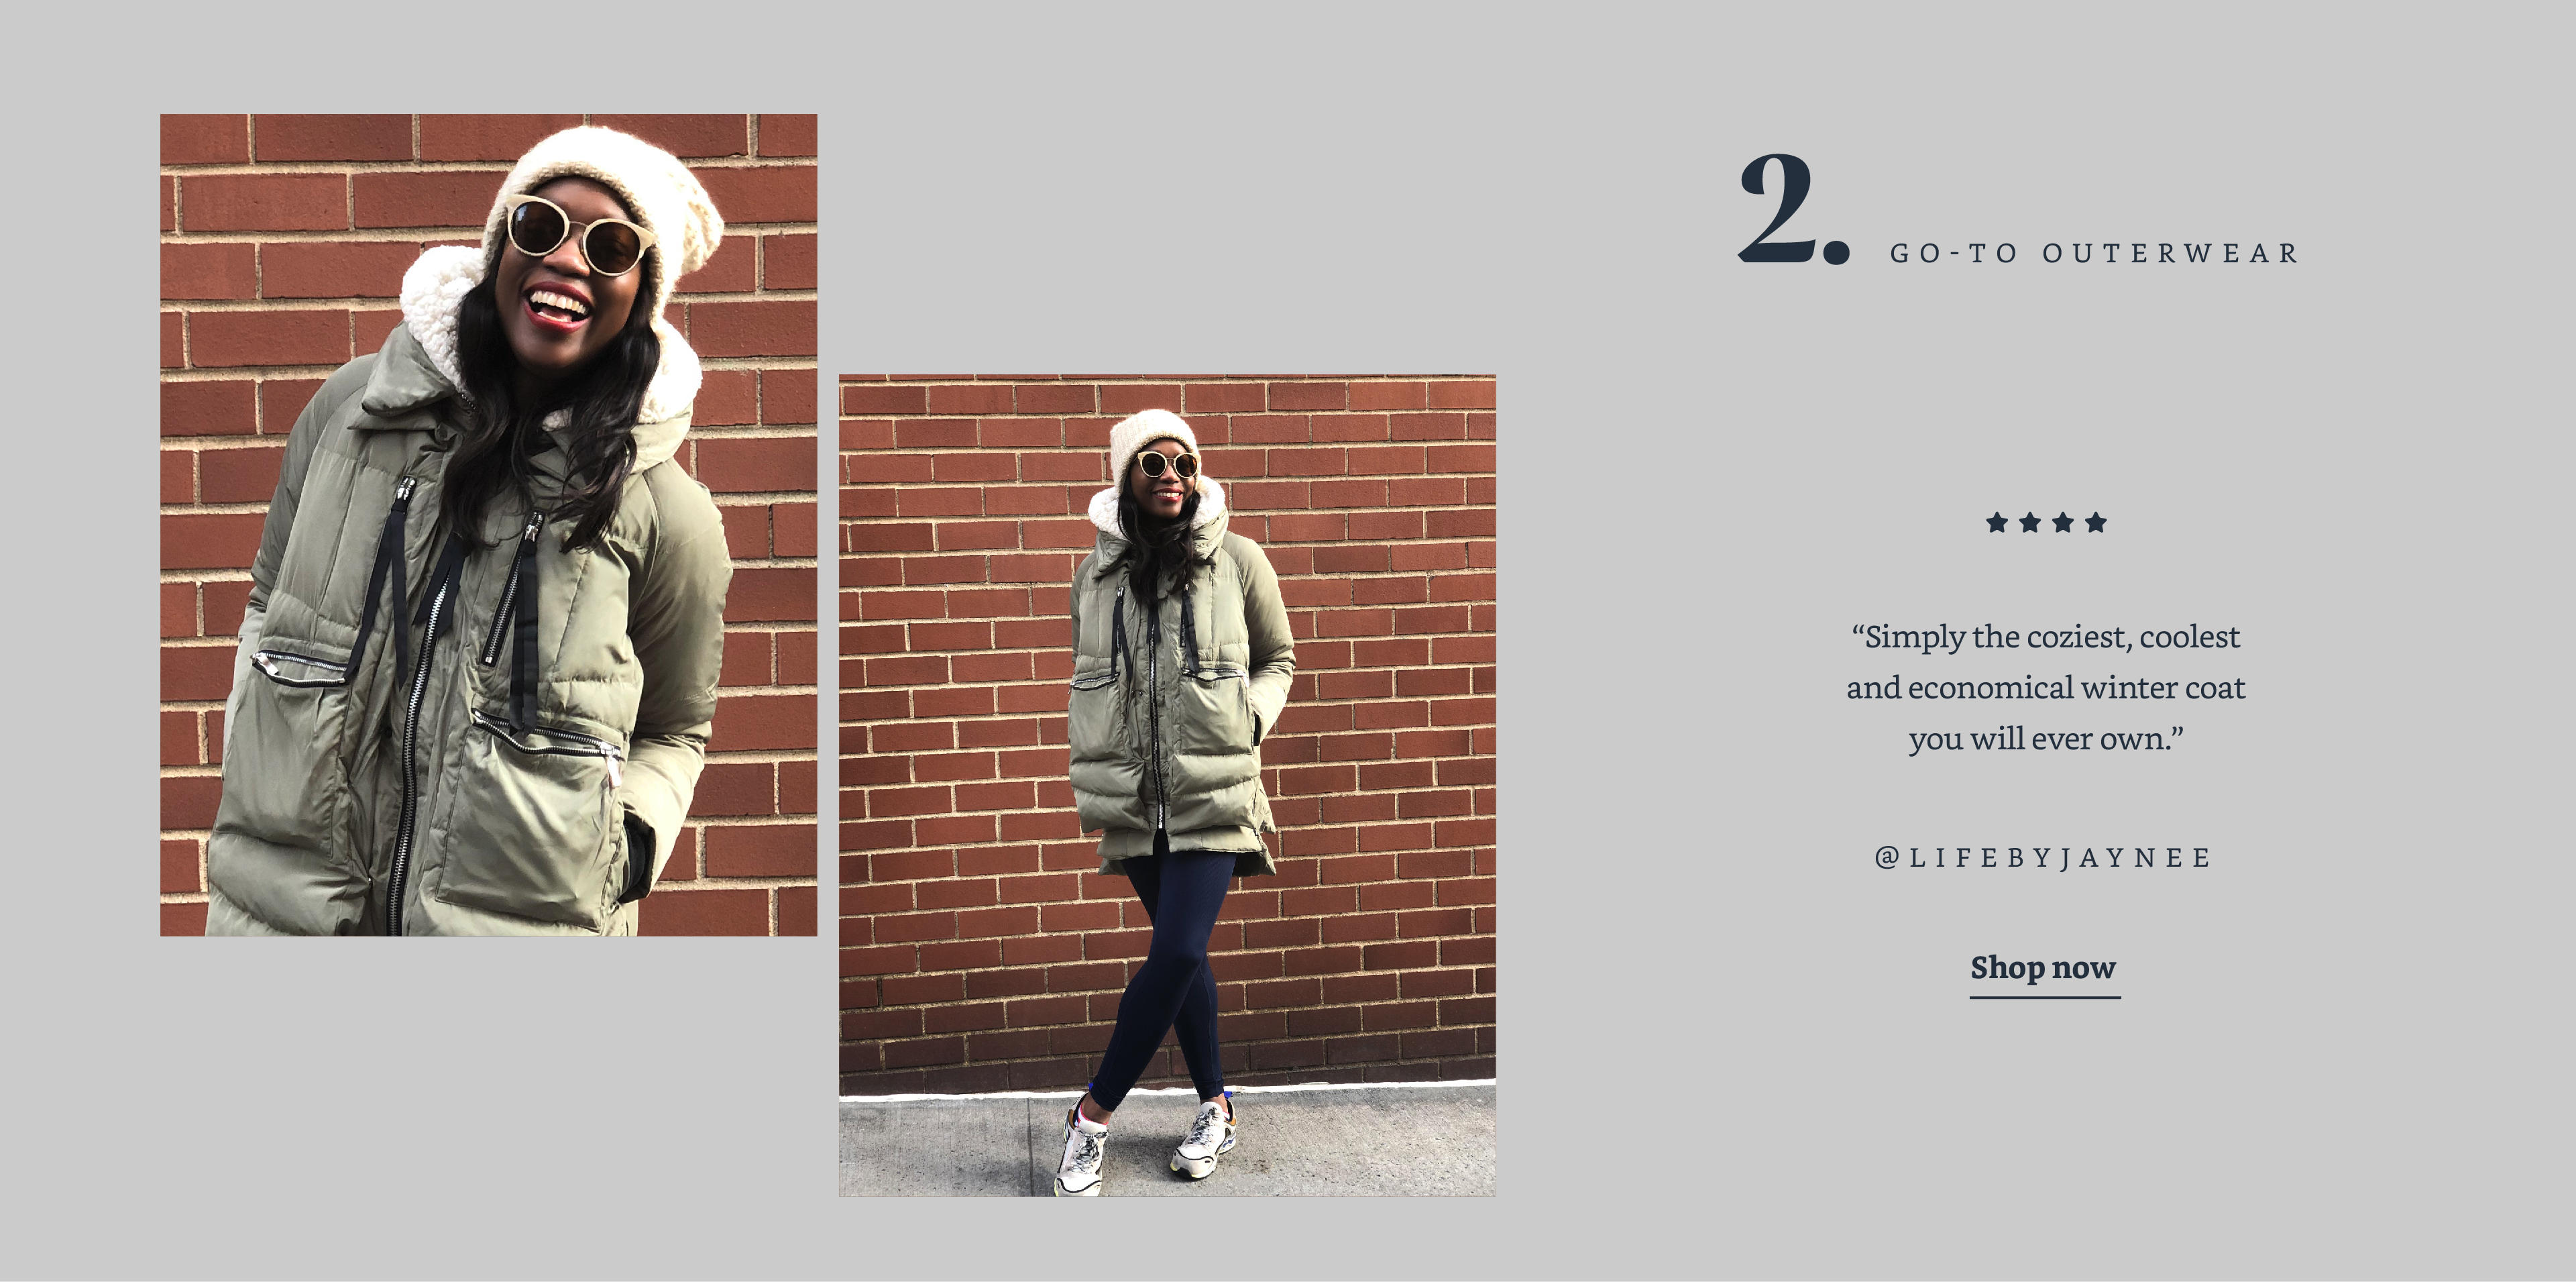 Go-to Outerwear